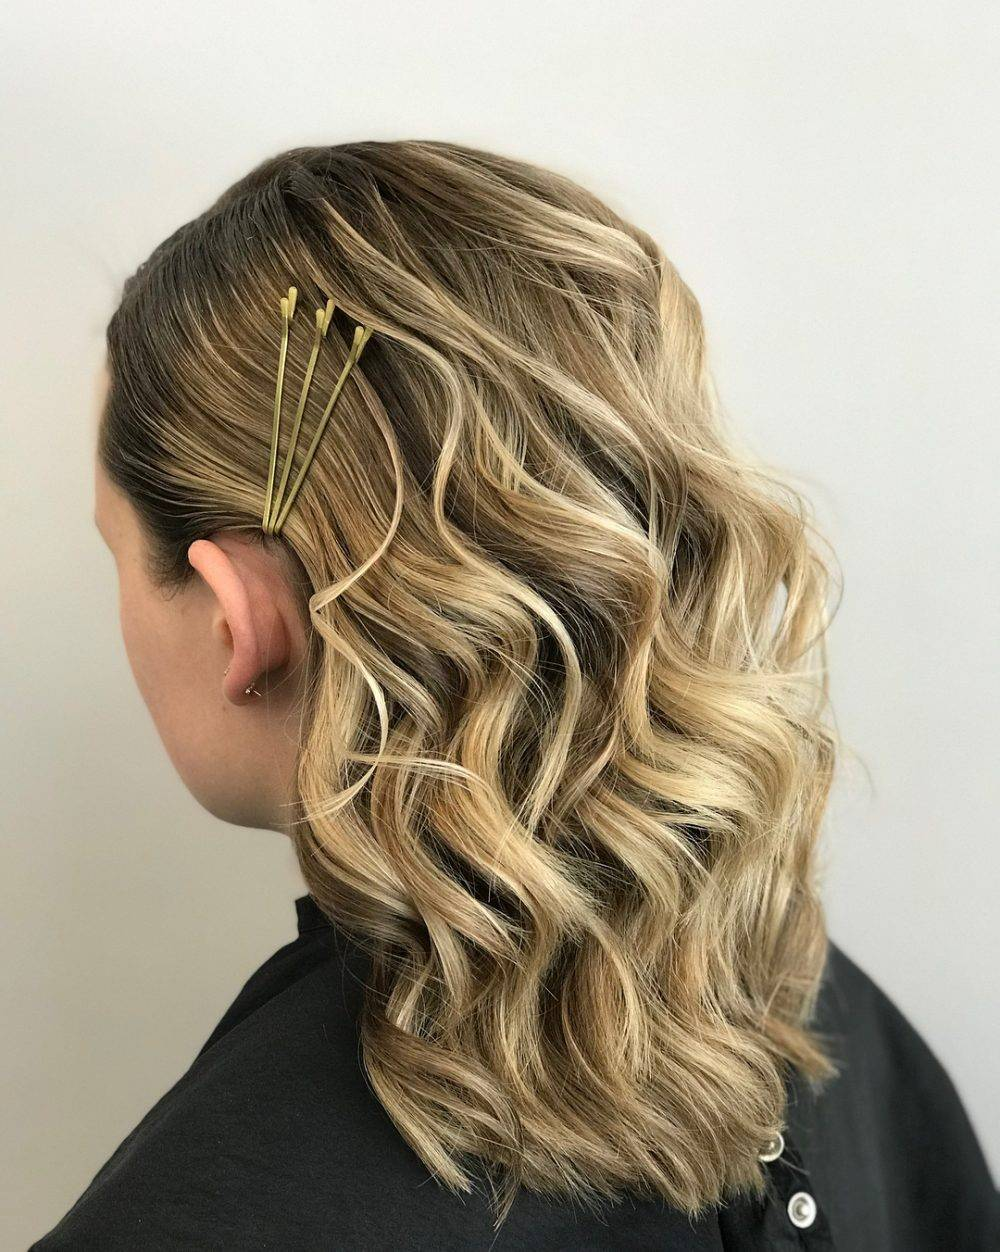 Girl with curly hair and gold bobby pins